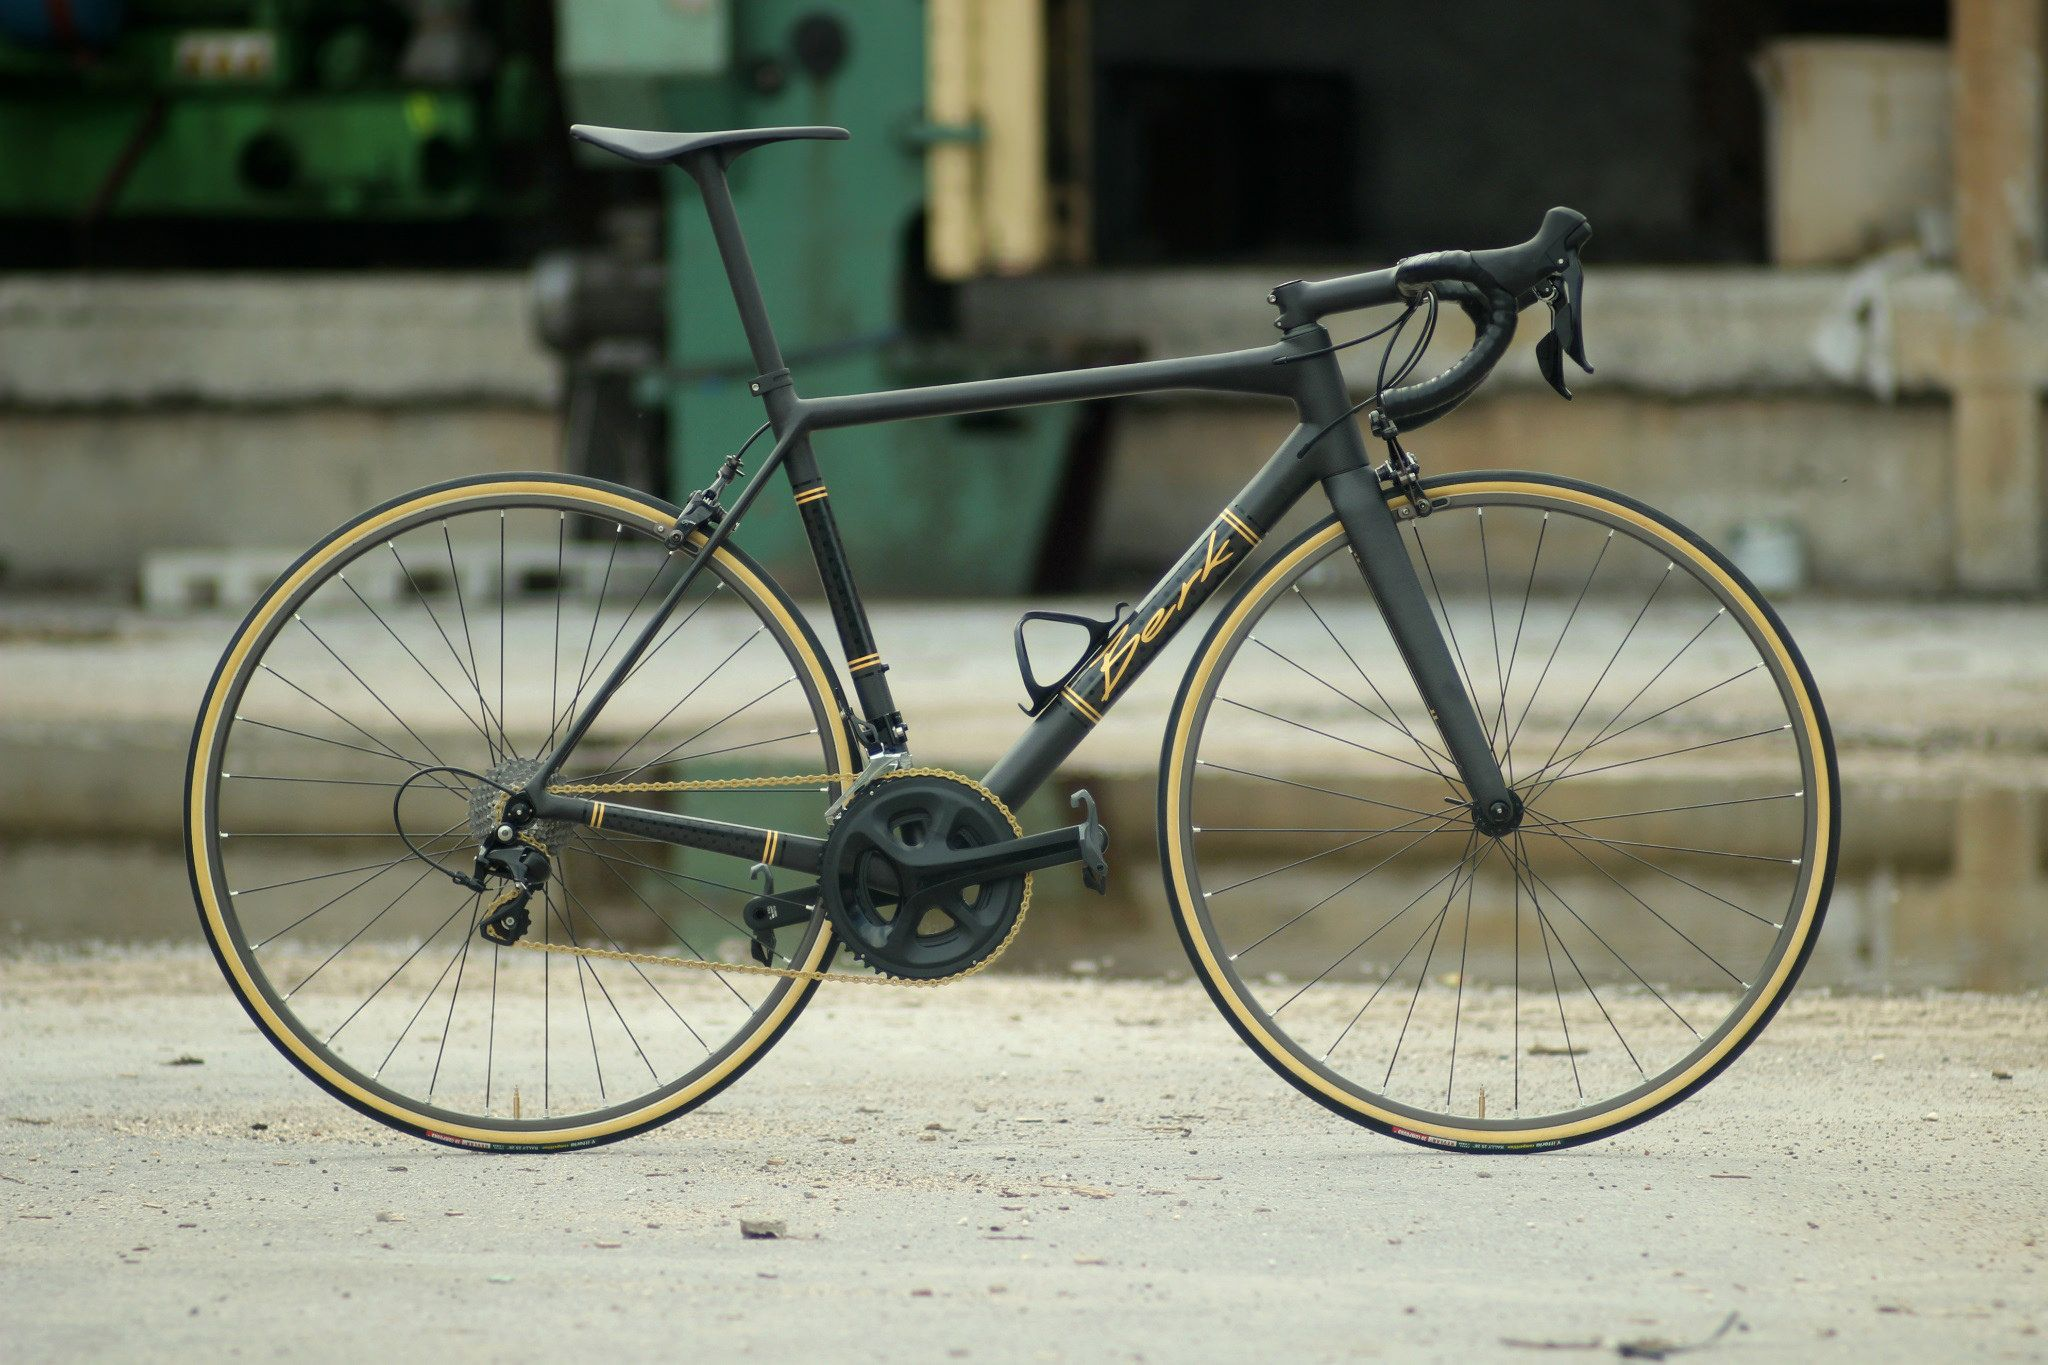 The Sexiest Road Bikes Thread No Posting Your Own Bike Page 667 Pinkbike Forum Bicycle Road Bikes Bike